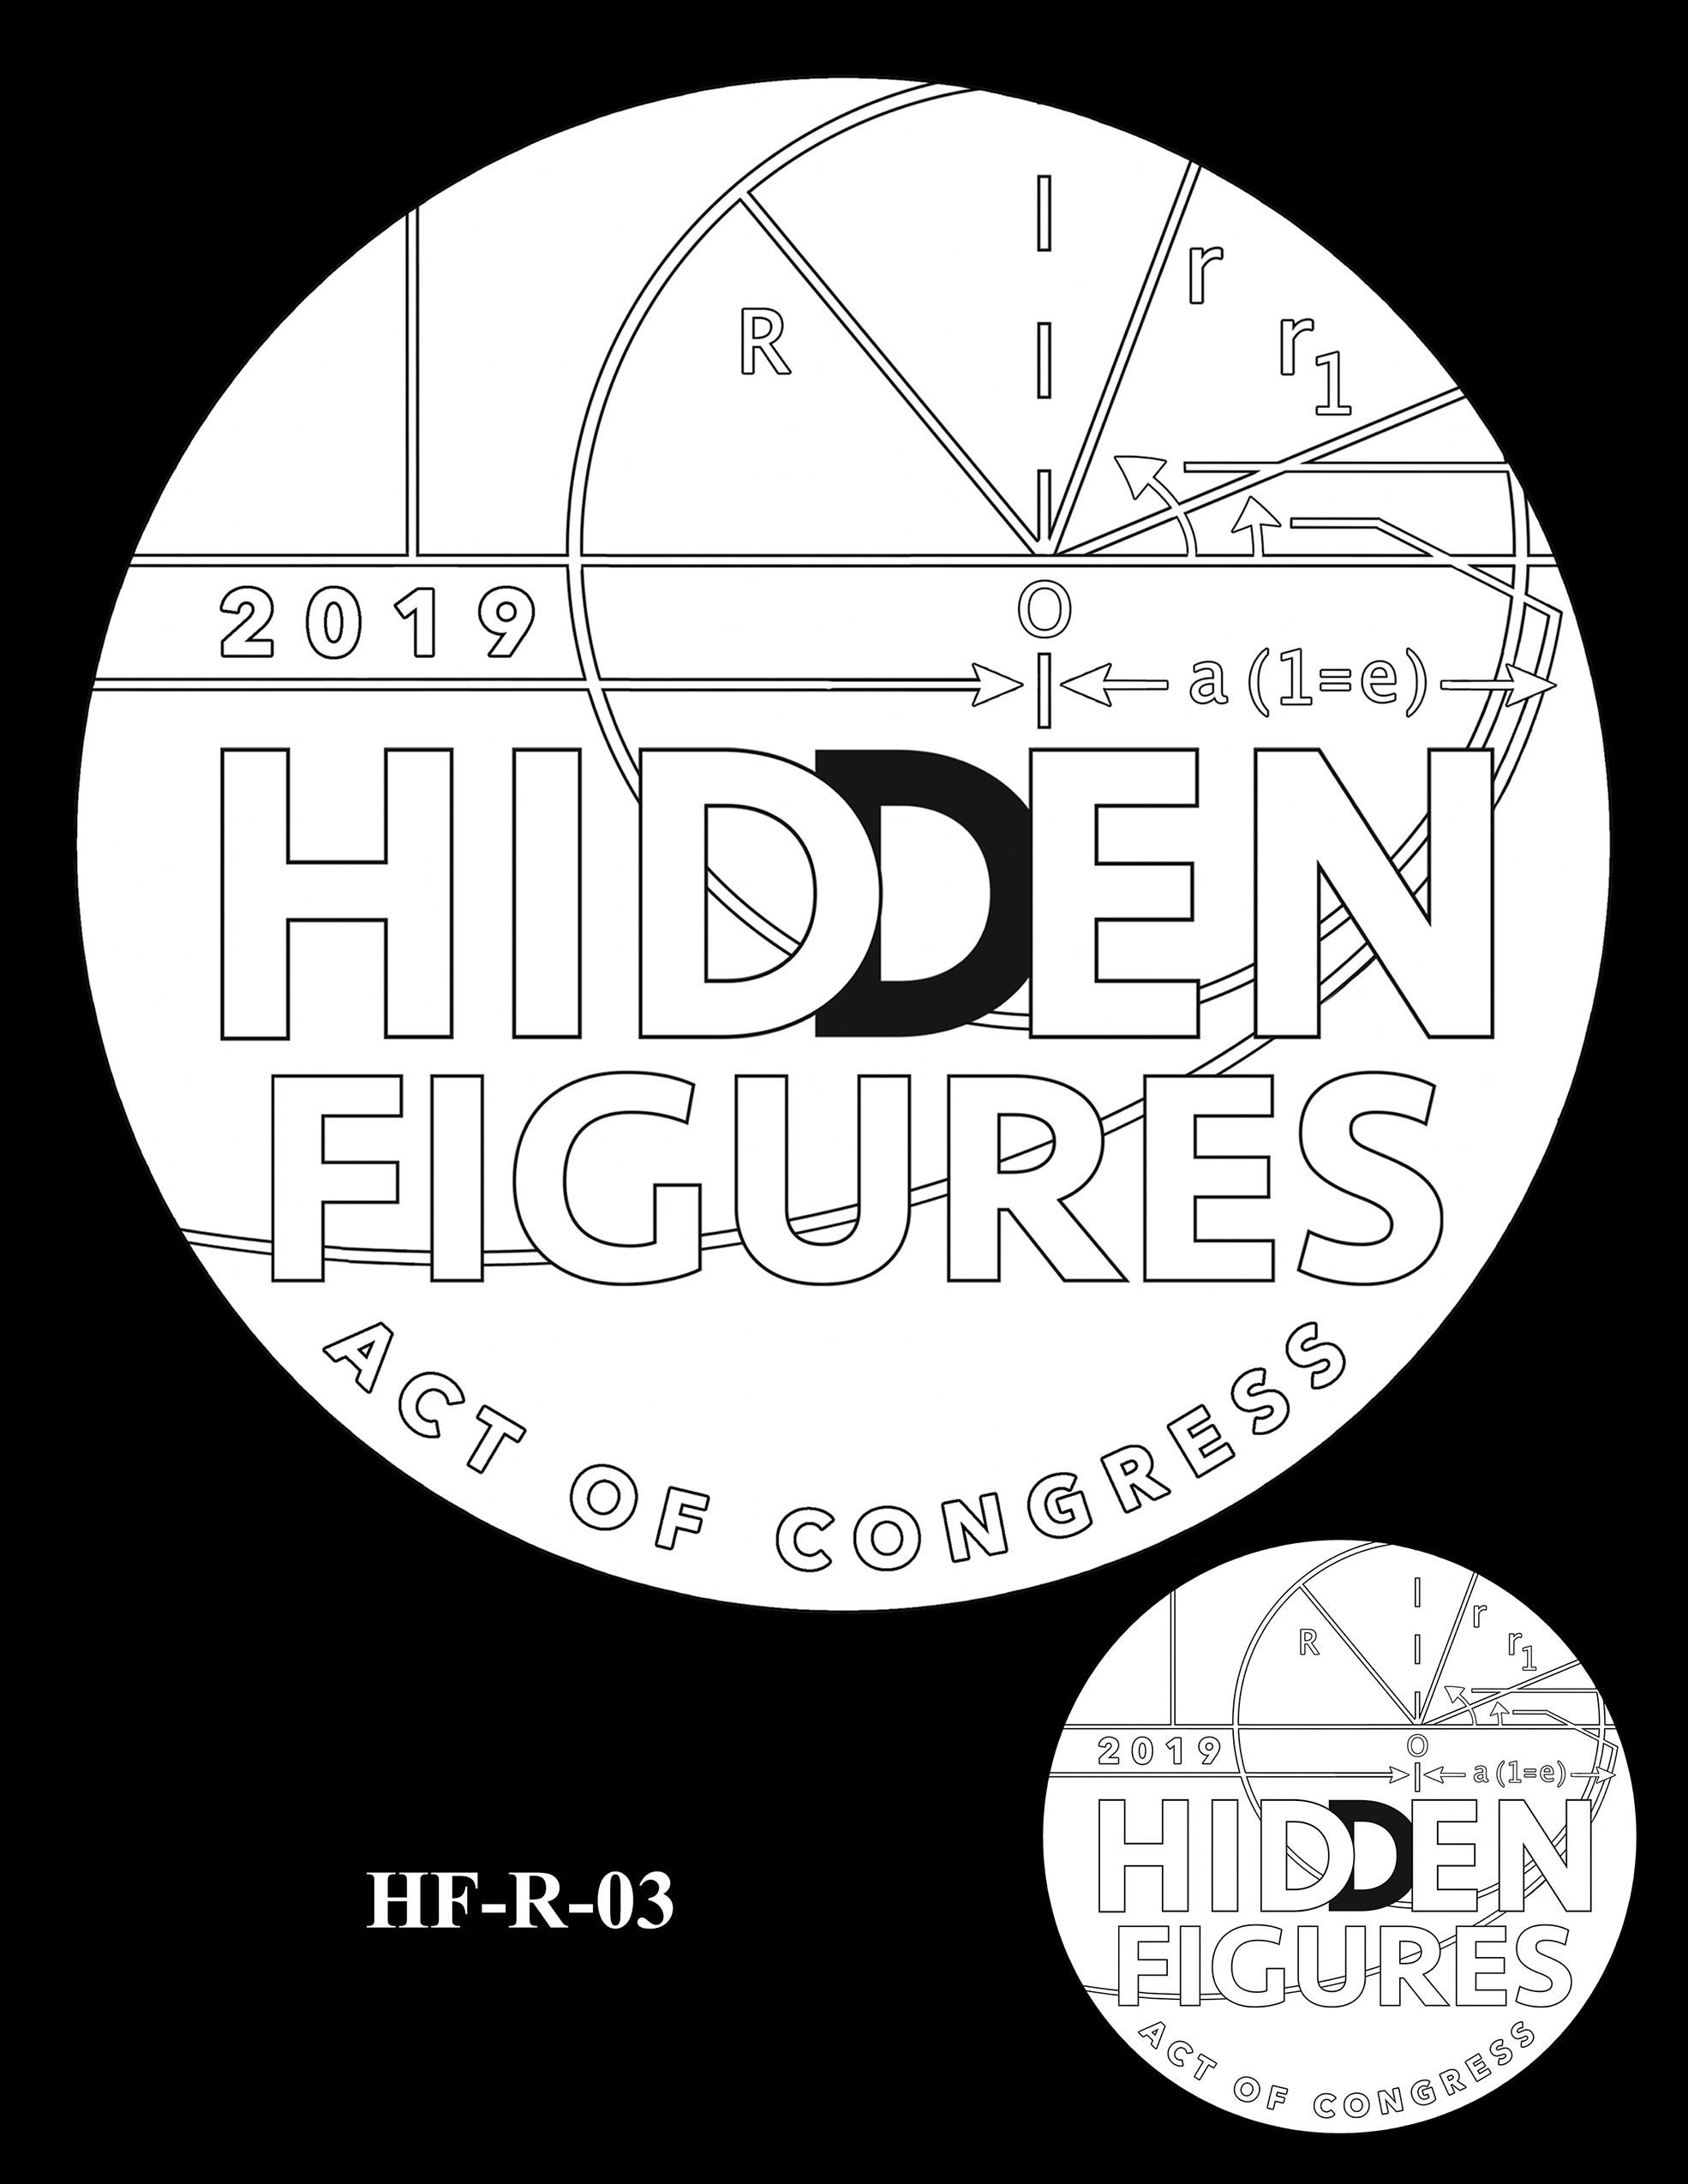 HF-R-03 -- Hidden Figures Group Congressional Gold Medal